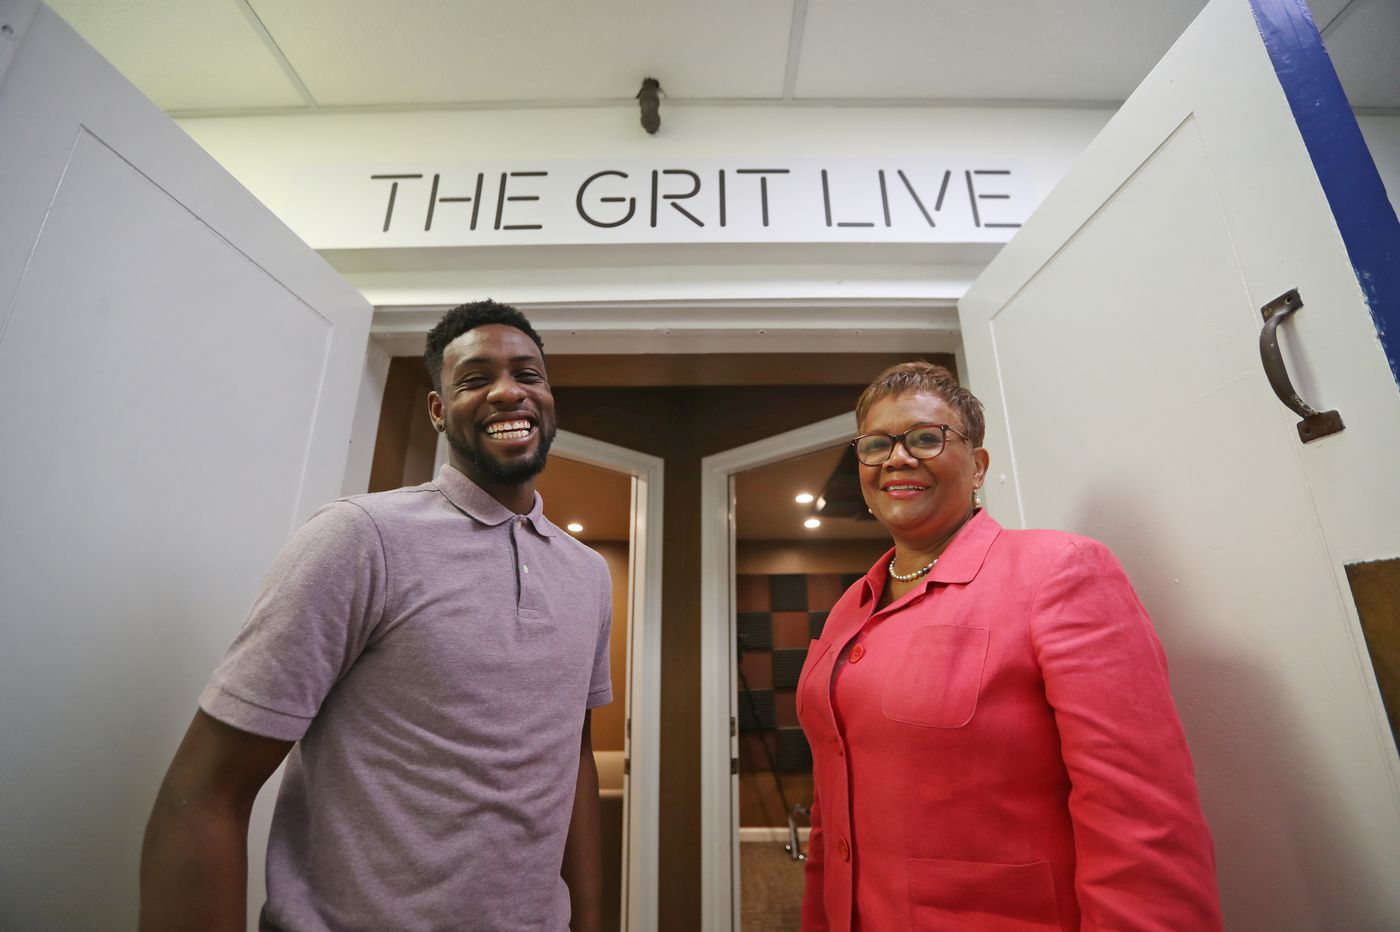 On Dick Clark's old dancing ground, the Grit Live podcast aims to be 'the Pandora of entrepreneurs'